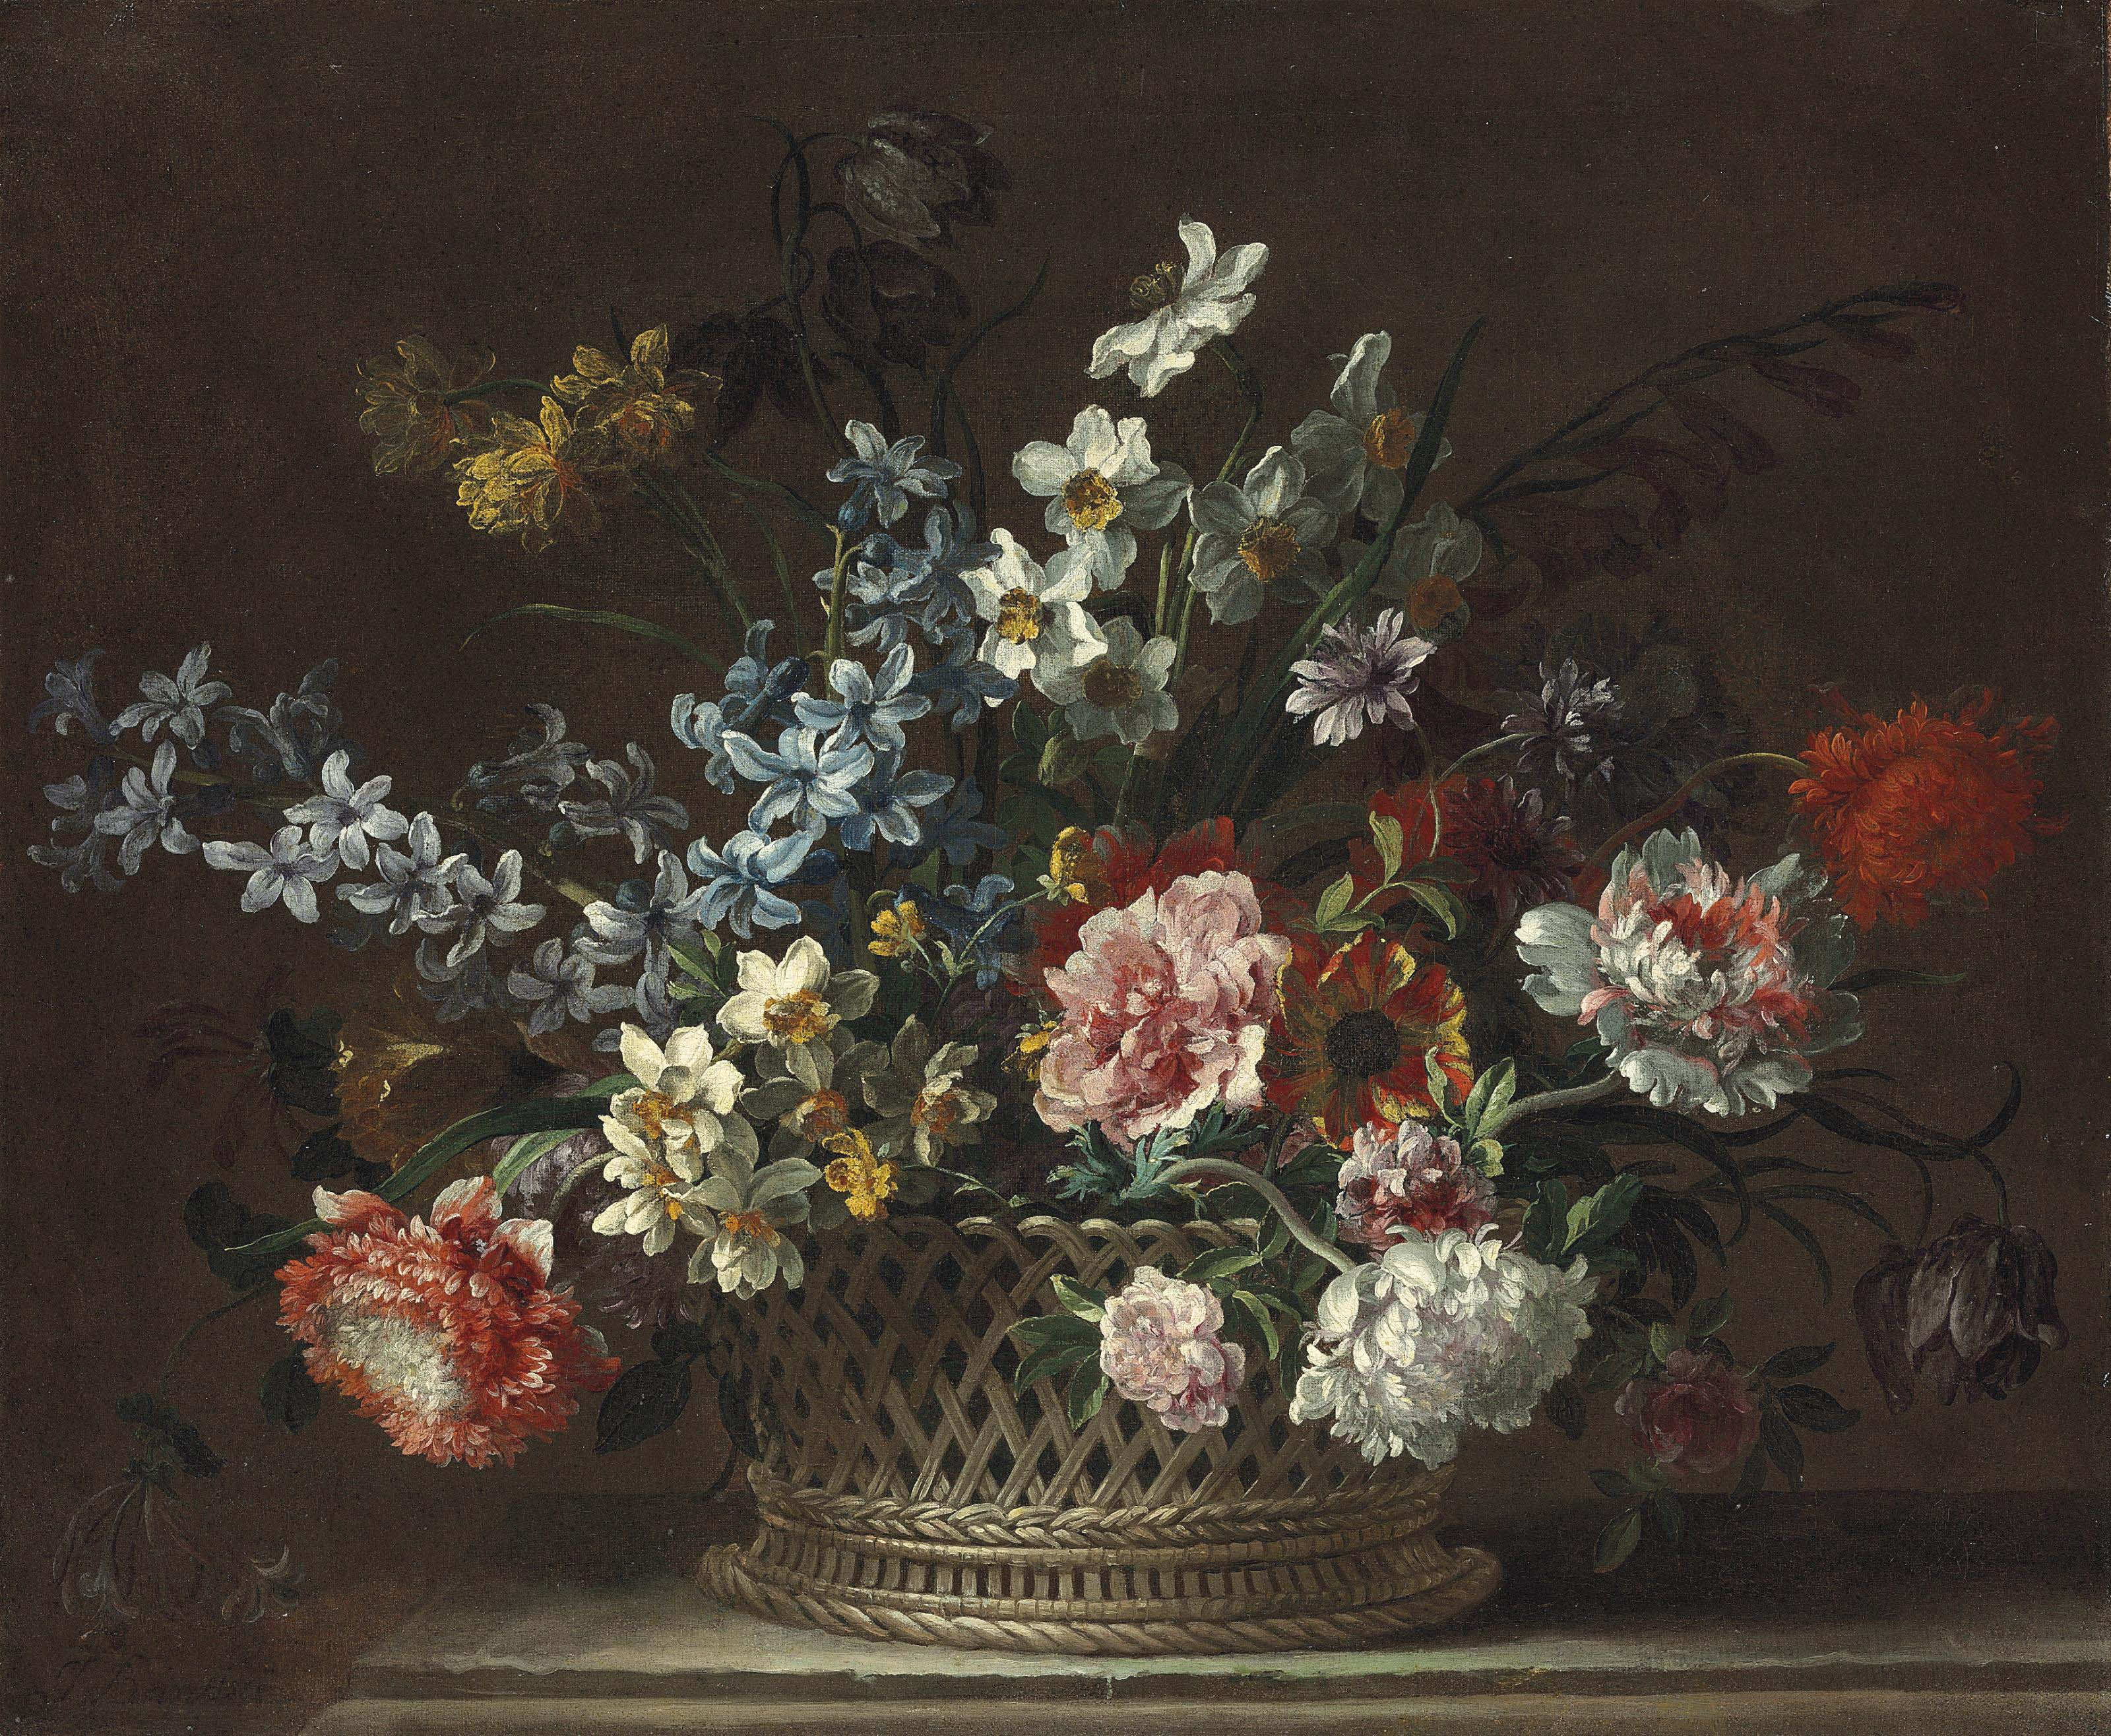 Roses, daffodils, hyacinths, anemones, fritillaries and other flowers in a woven basket on a stone ledge